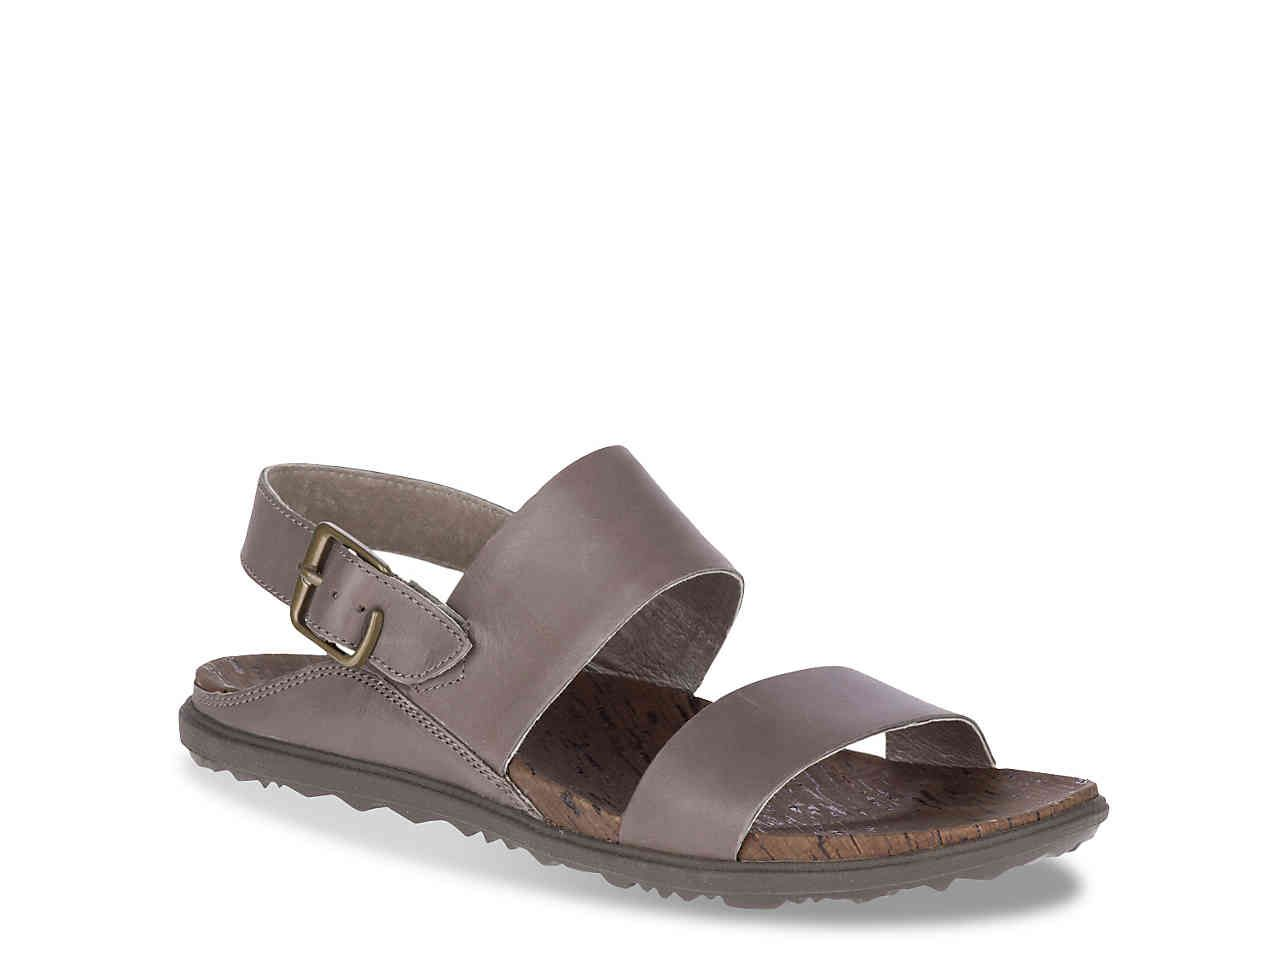 9b3588c79acb Merrell Around Town Luxe Backstrap Sandal Women s Shoes